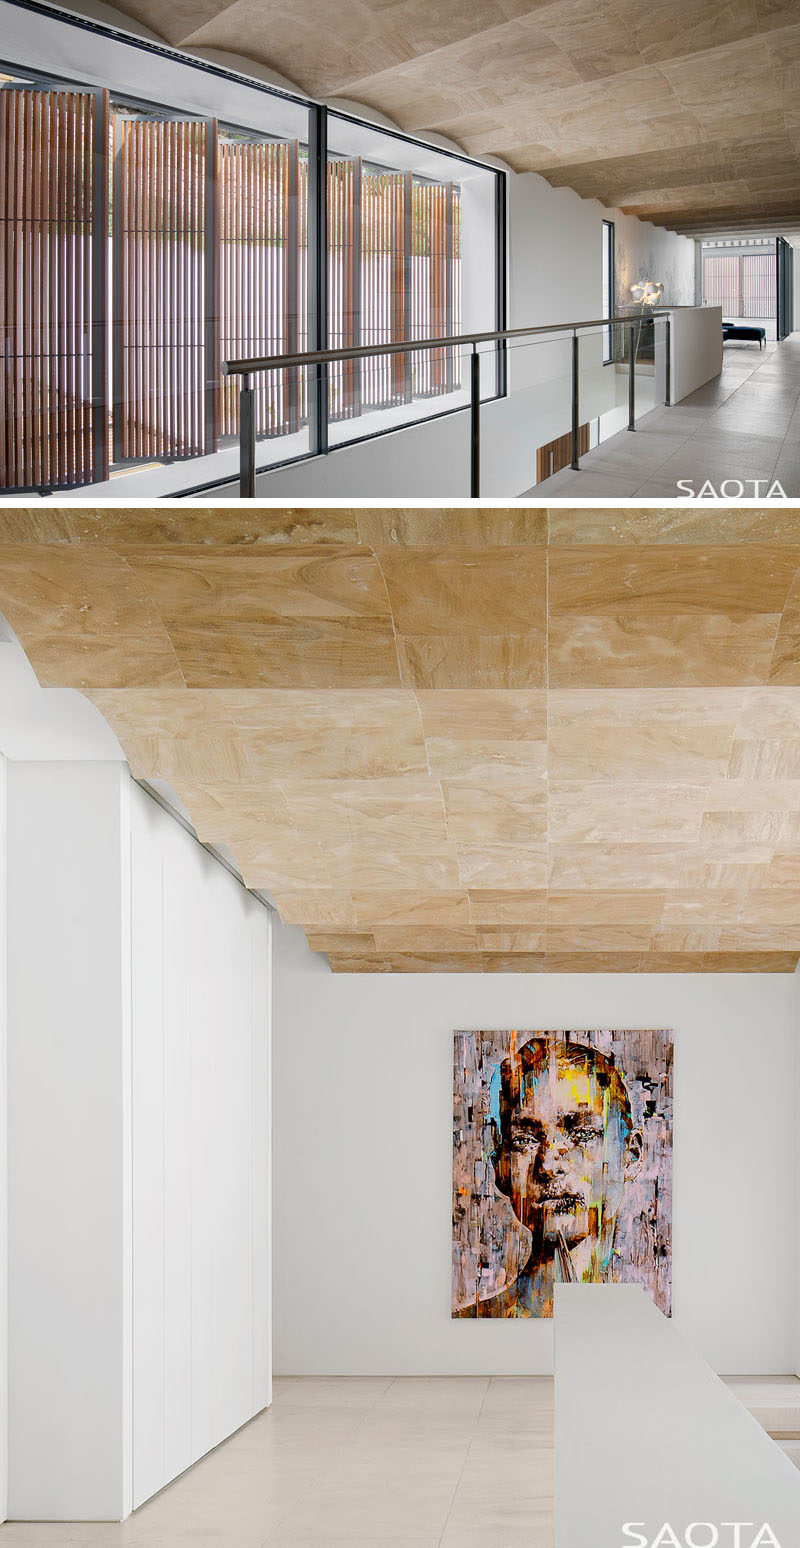 Inside this modern house, there's a gallery-like space with signature barrel vaulted ceilings. #VaultedCeiling #InteriorDesign